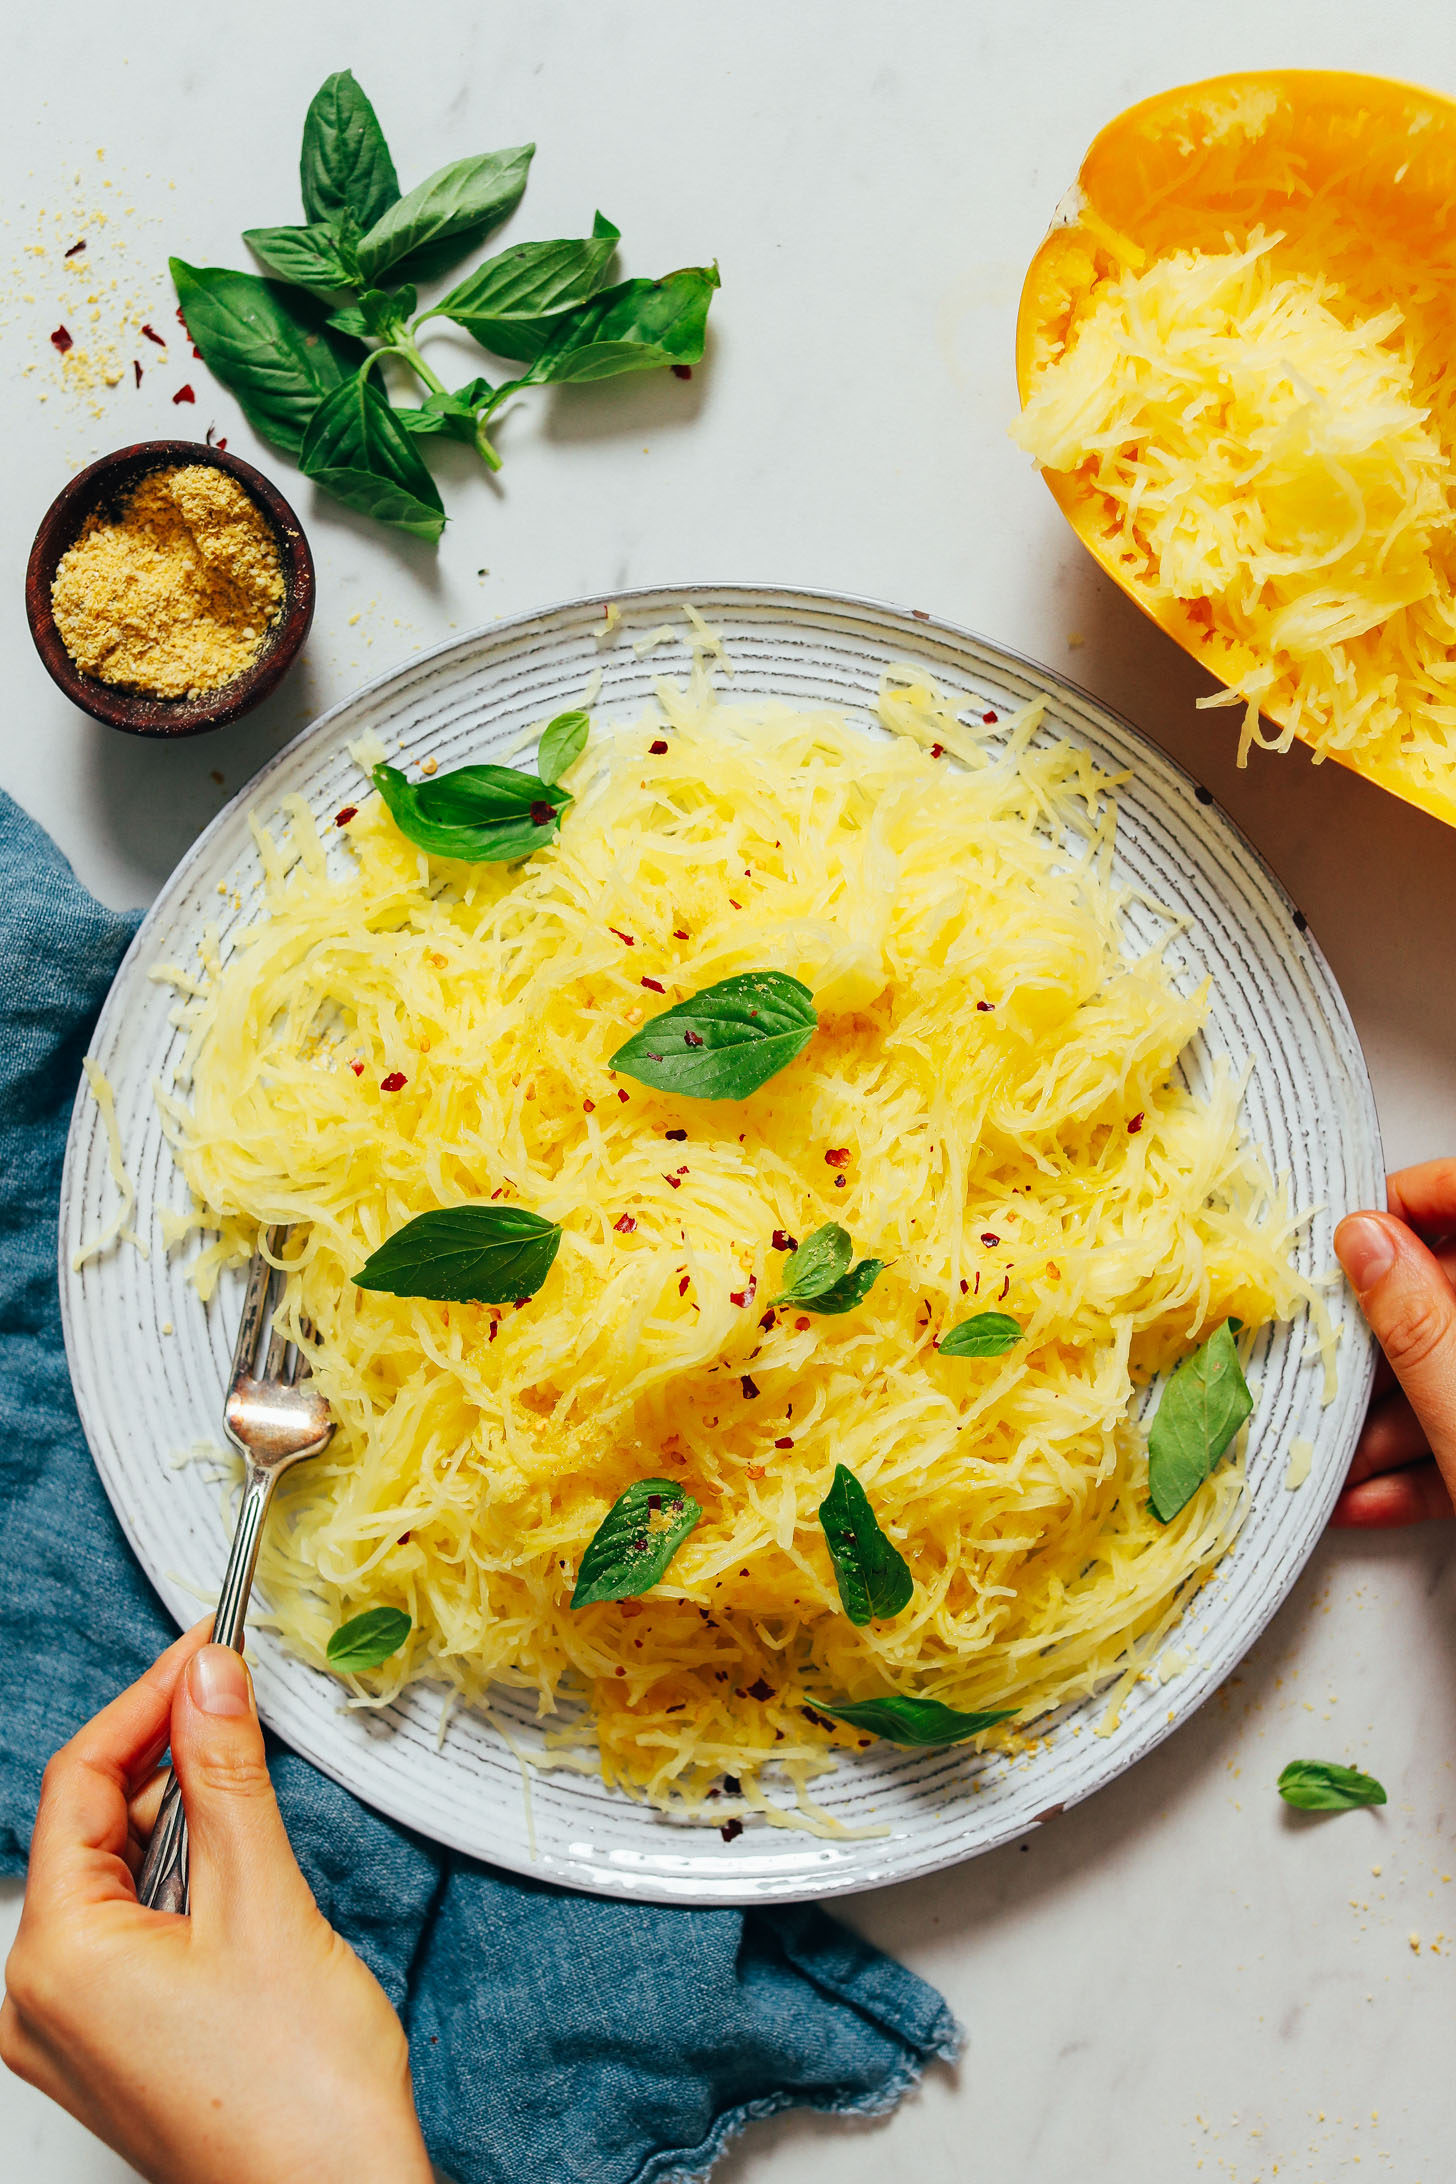 Bowl of spaghetti squash topped with fresh basil and red chili flakes